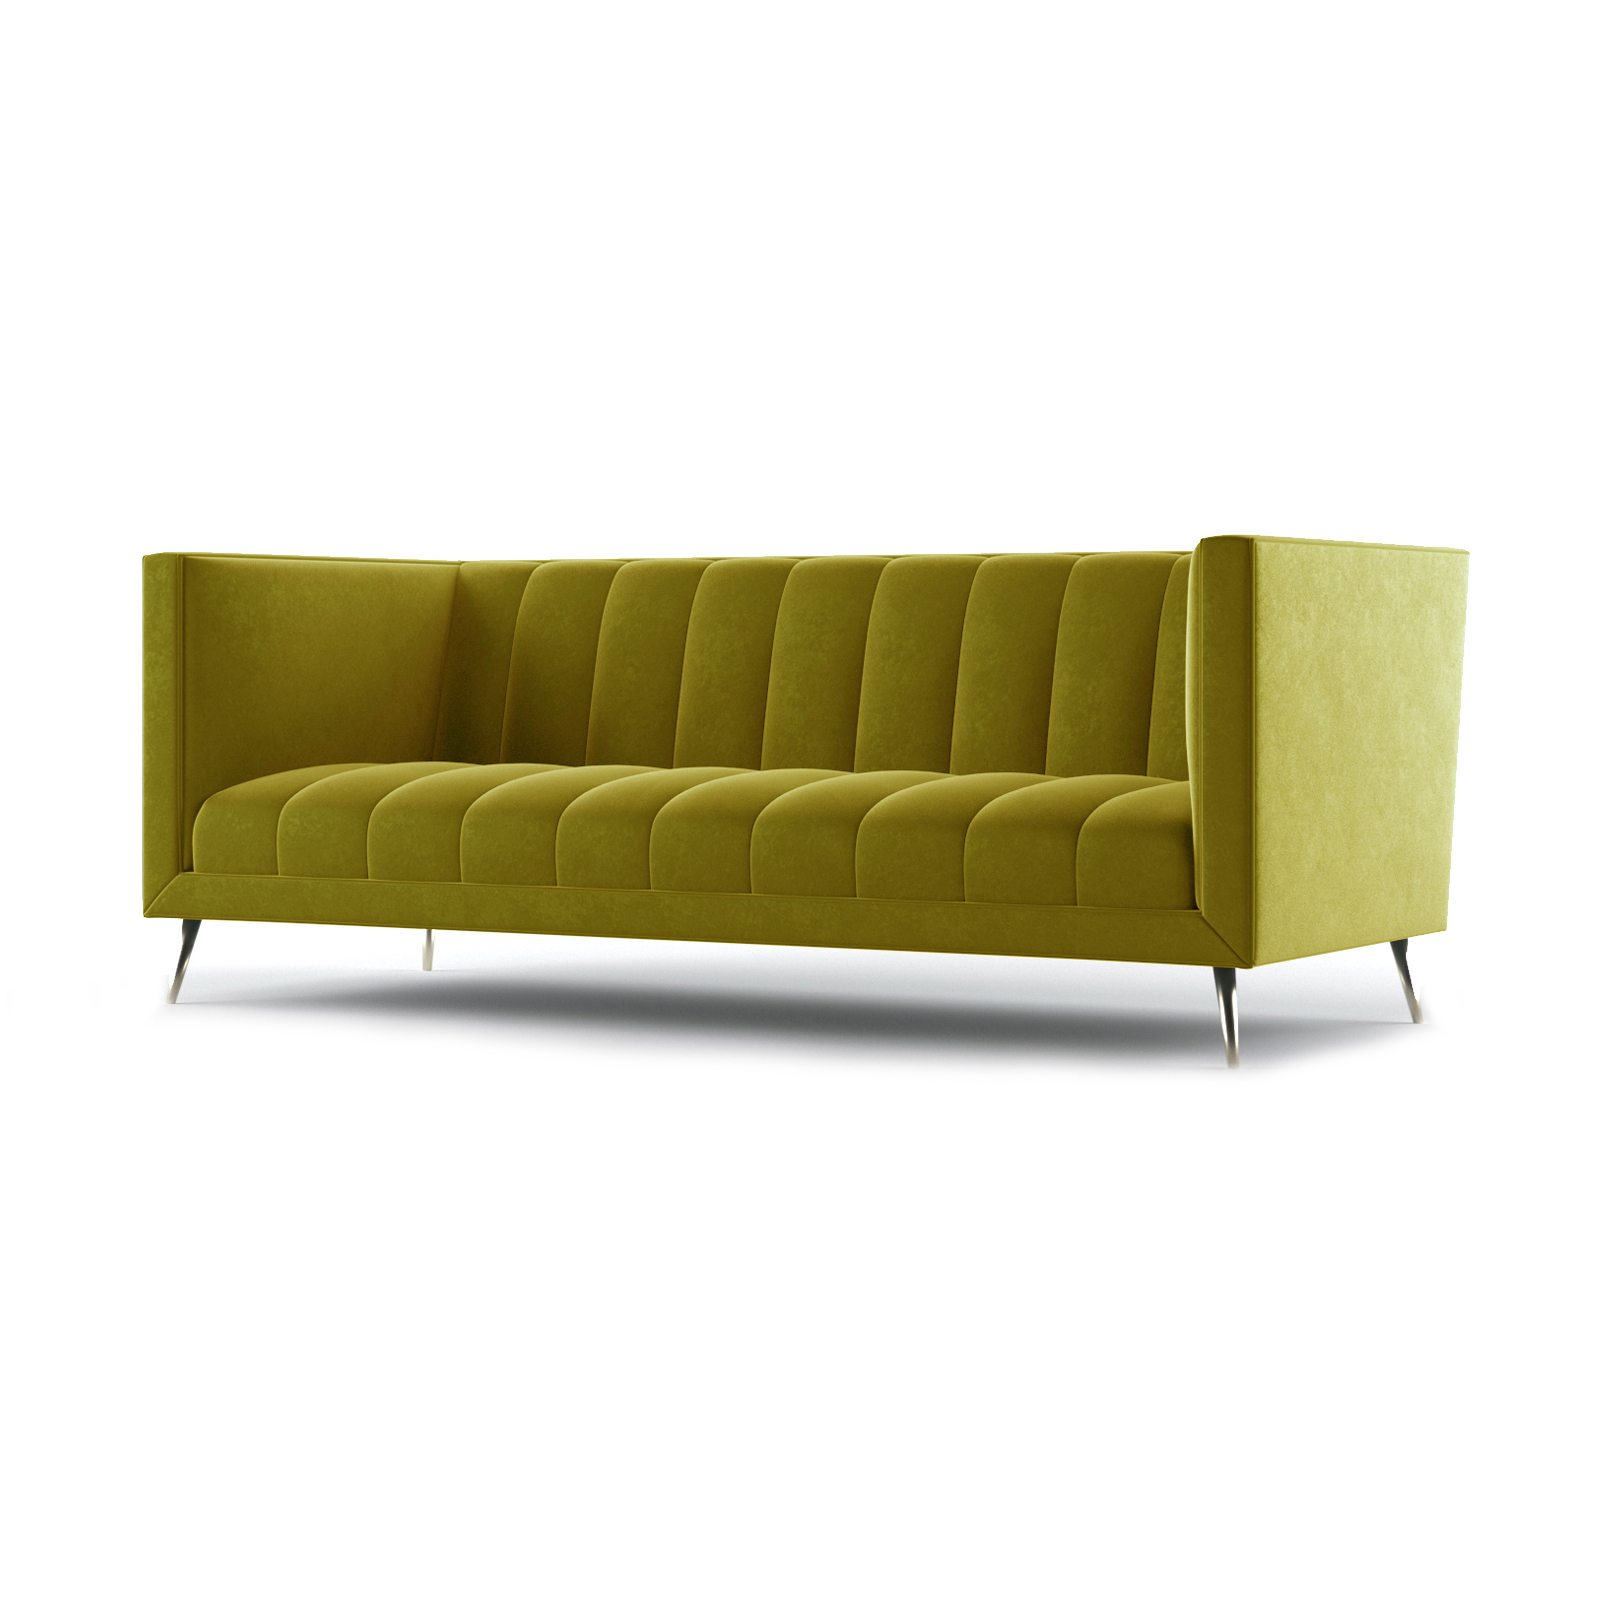 one and half seater sofa cheap chesterfield uk luxury three sofas connick a